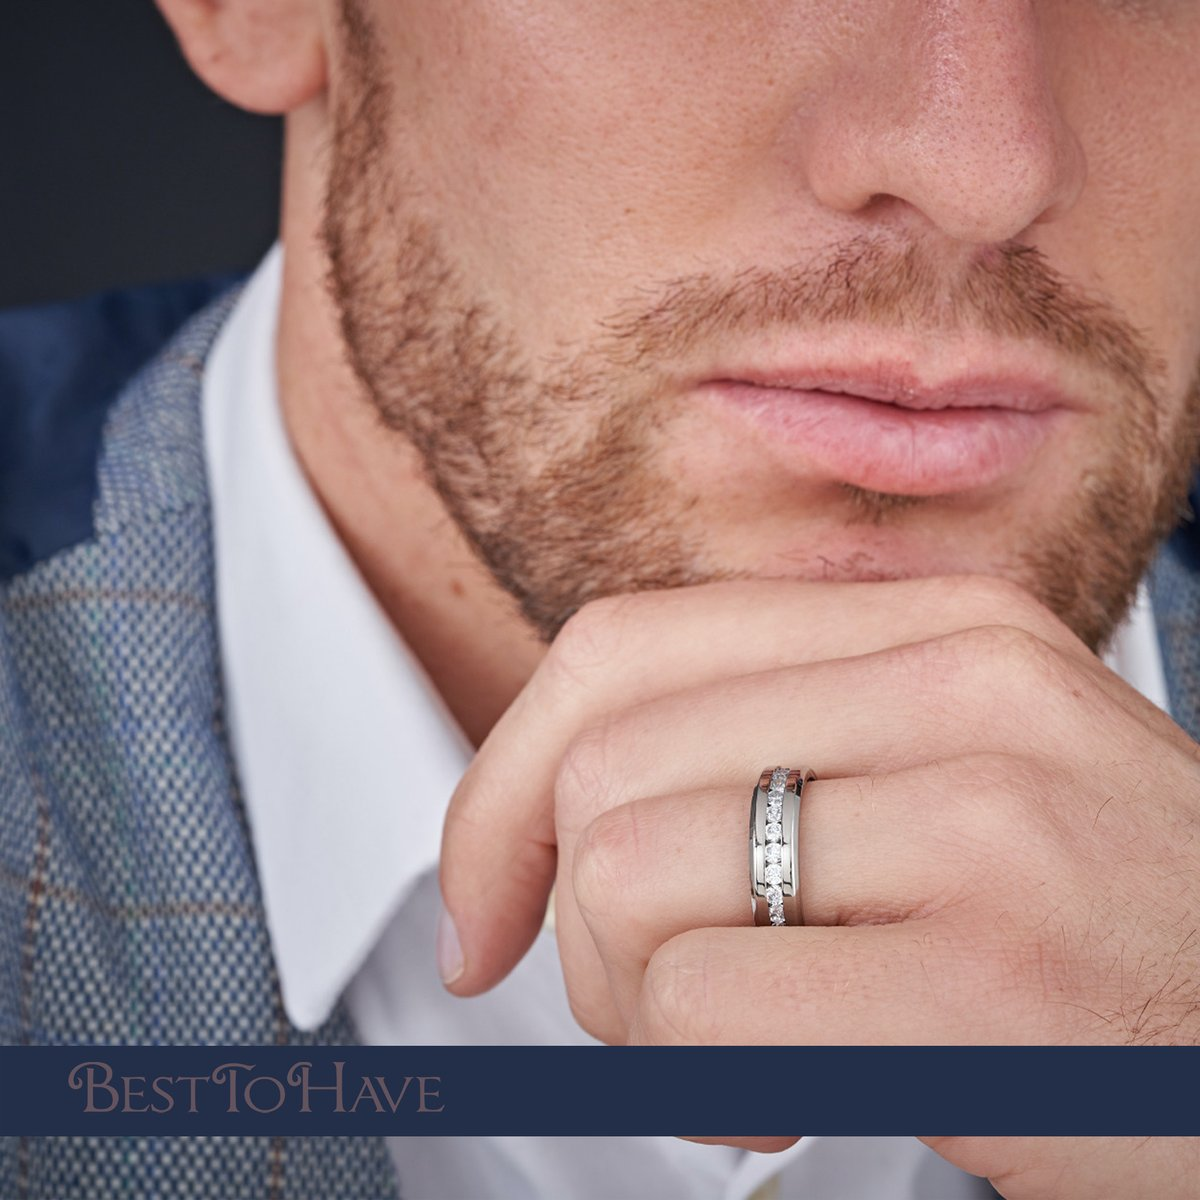 Super elegant and strong titanium ring for Him  Code: 193 £24.99  #Besttohave #Besttohavejewelry #rings #engagement #outfit #outfitoftheday #menrings #weddingrings #lovejewelry #ring #titaniumRing #titaniumjewelry #cubiczirconia #wedding #titanium